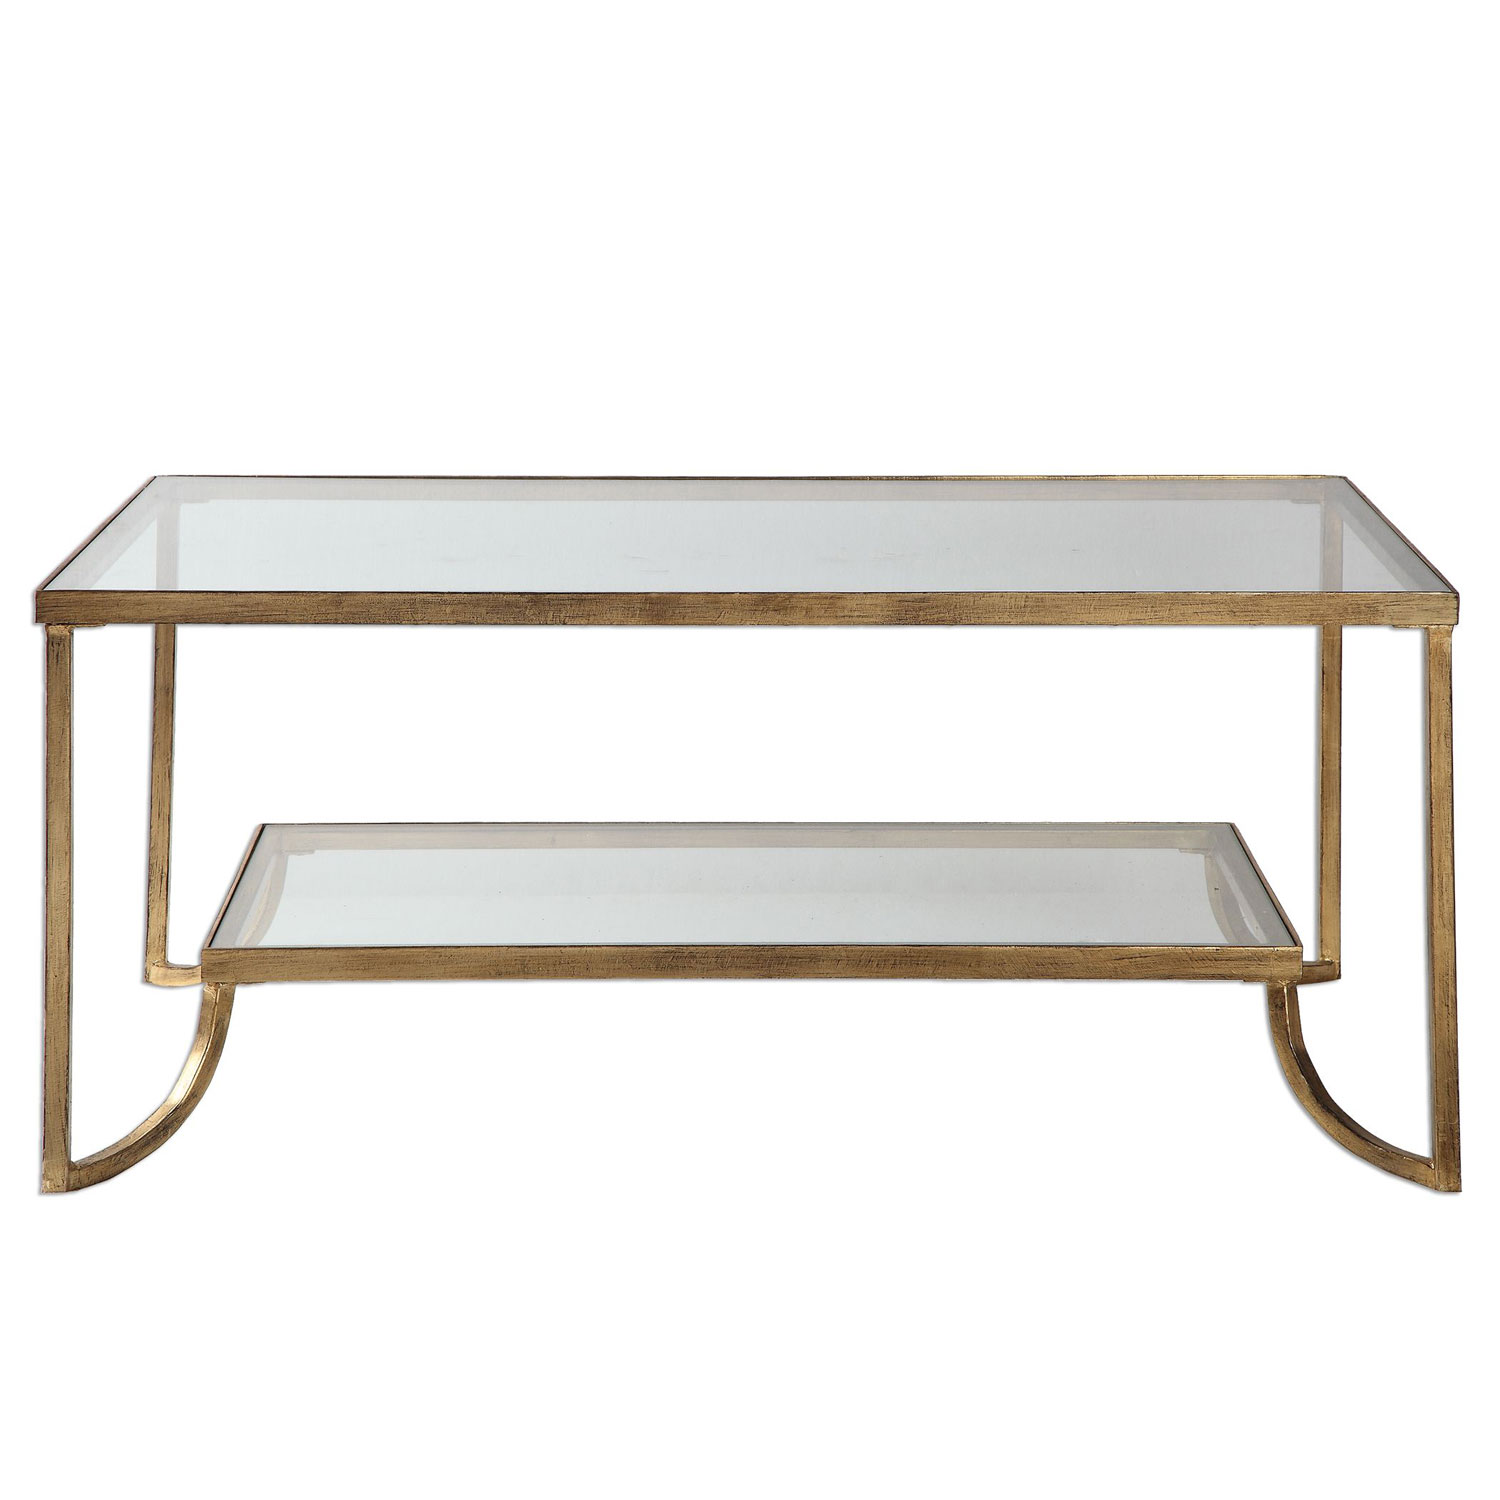 uttermost katina gold leaf coffee table bellacor accent hover zoom modern lamps circular cover ellipsis vanity nautical style floor wood storage cubes ikea distressed entry rope